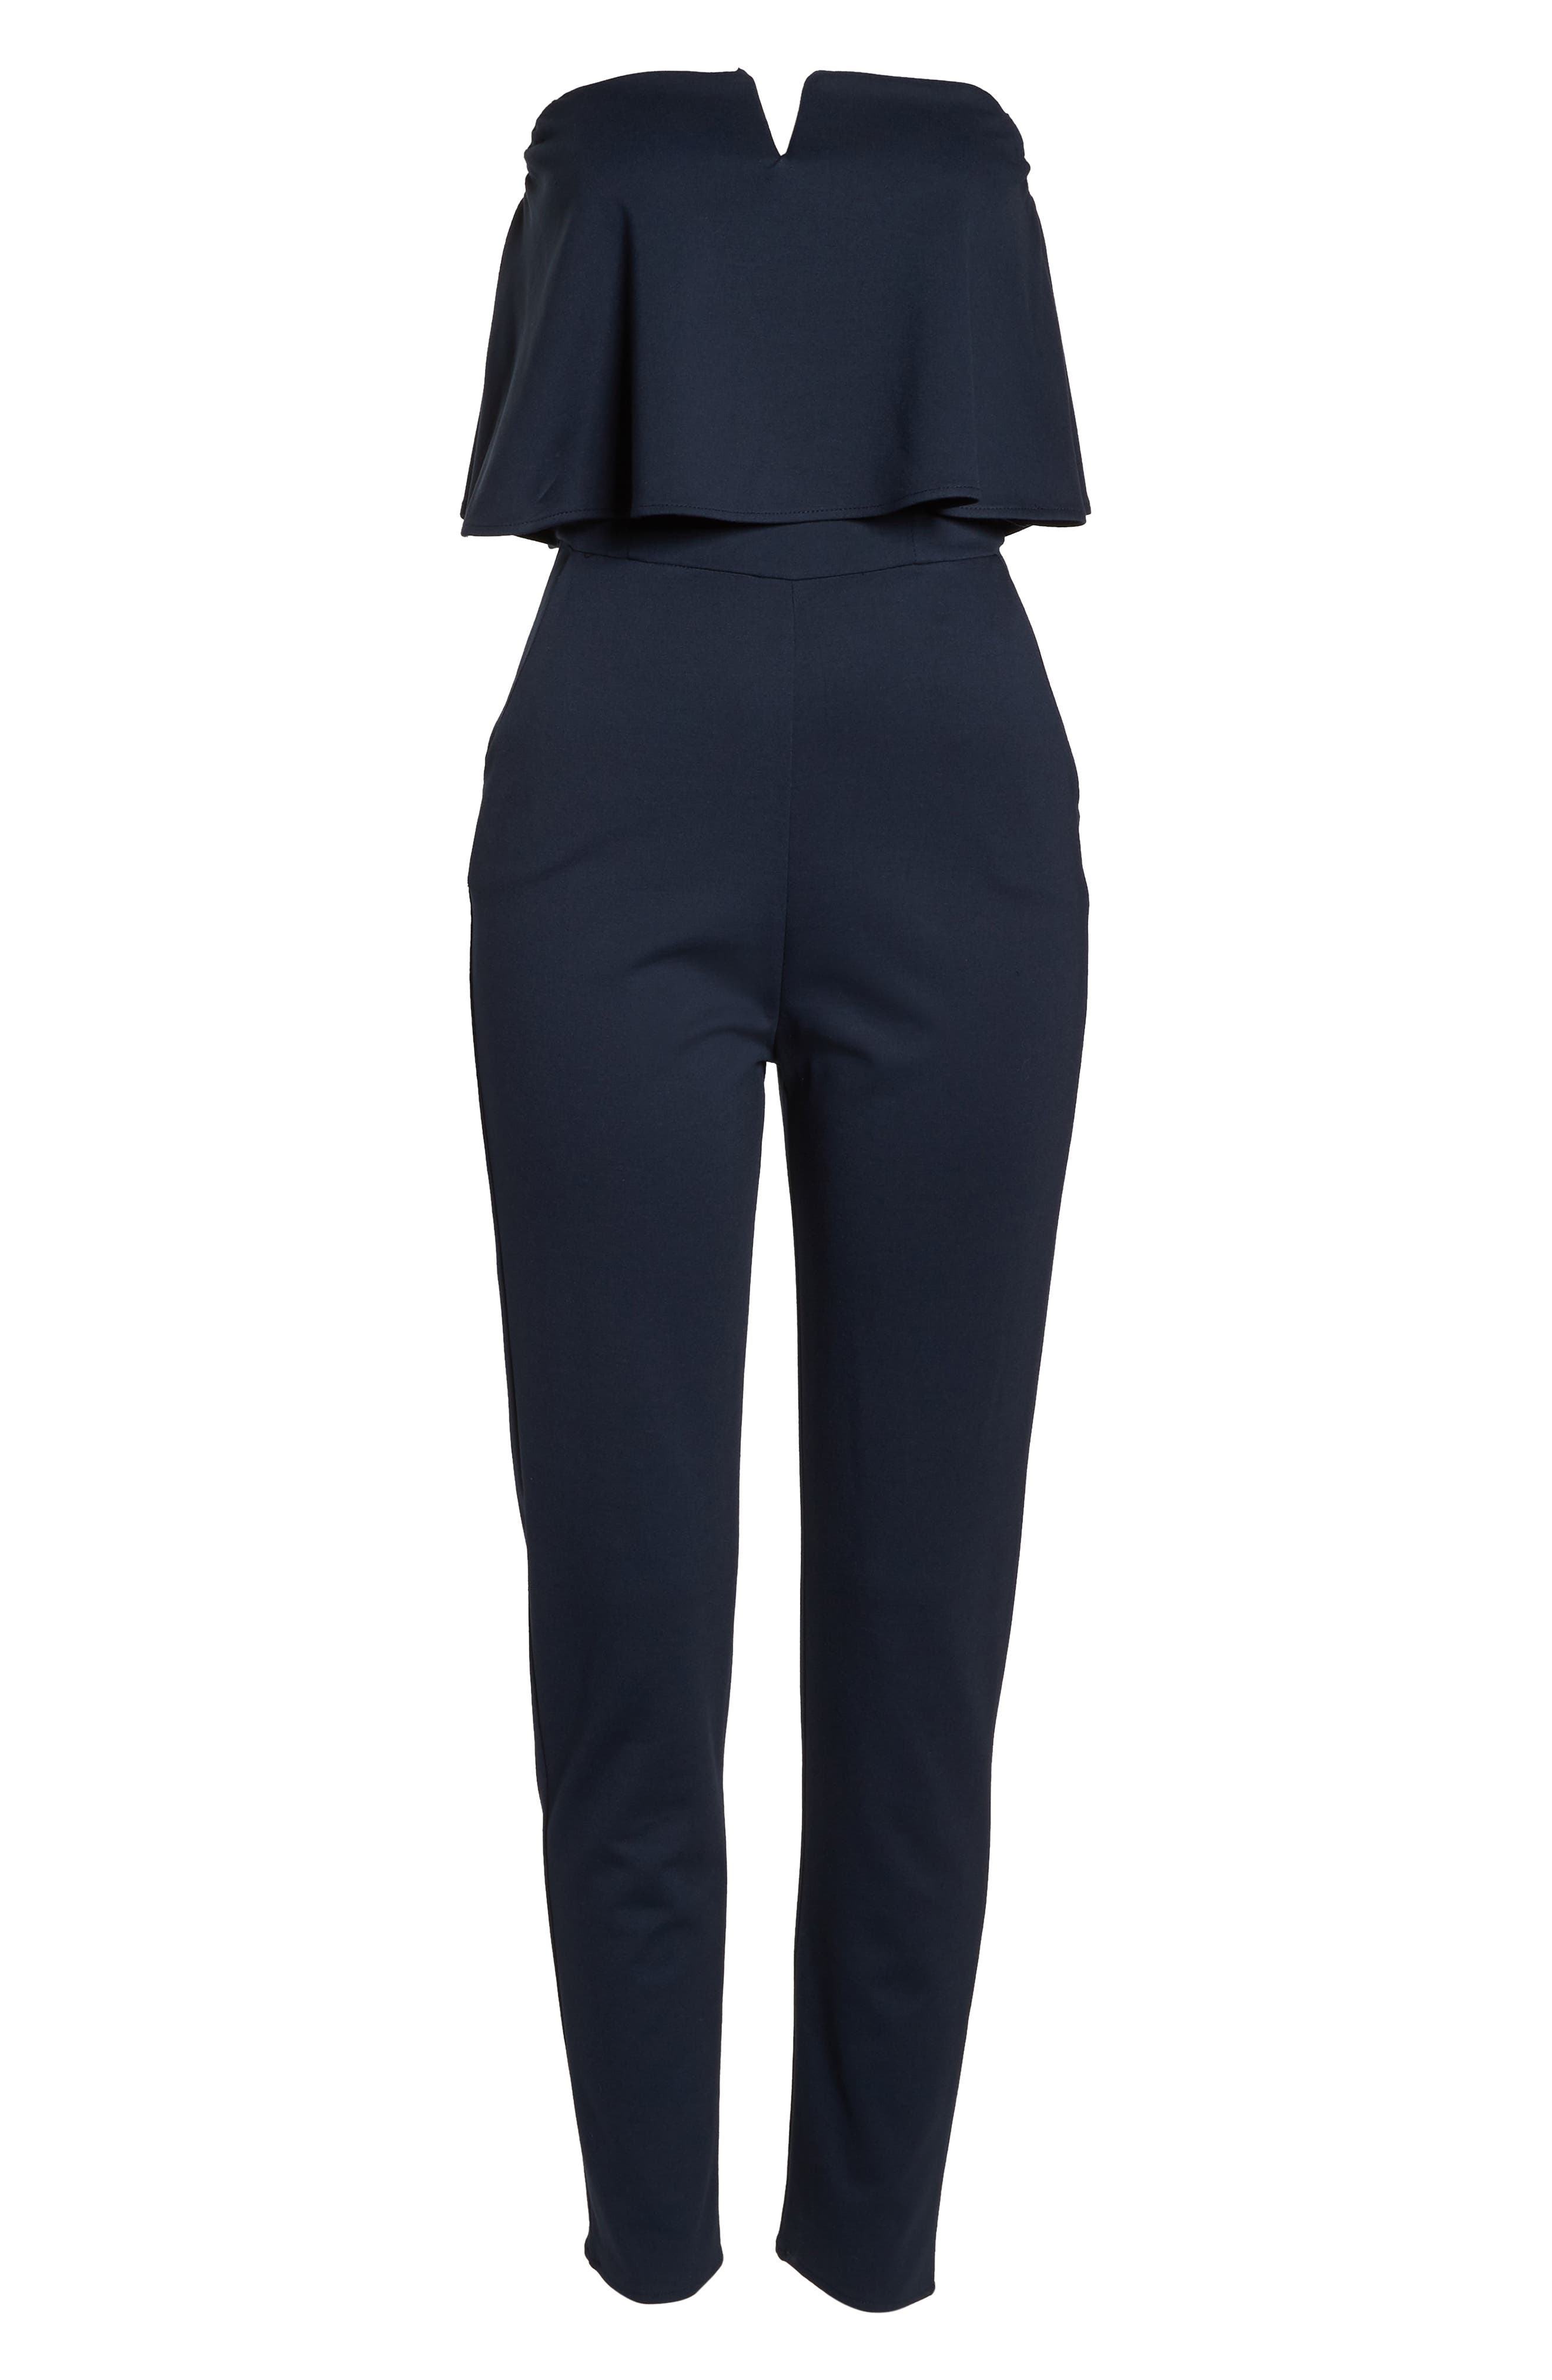 Strapless Jumpsuit,                             Alternate thumbnail 7, color,                             NAVY